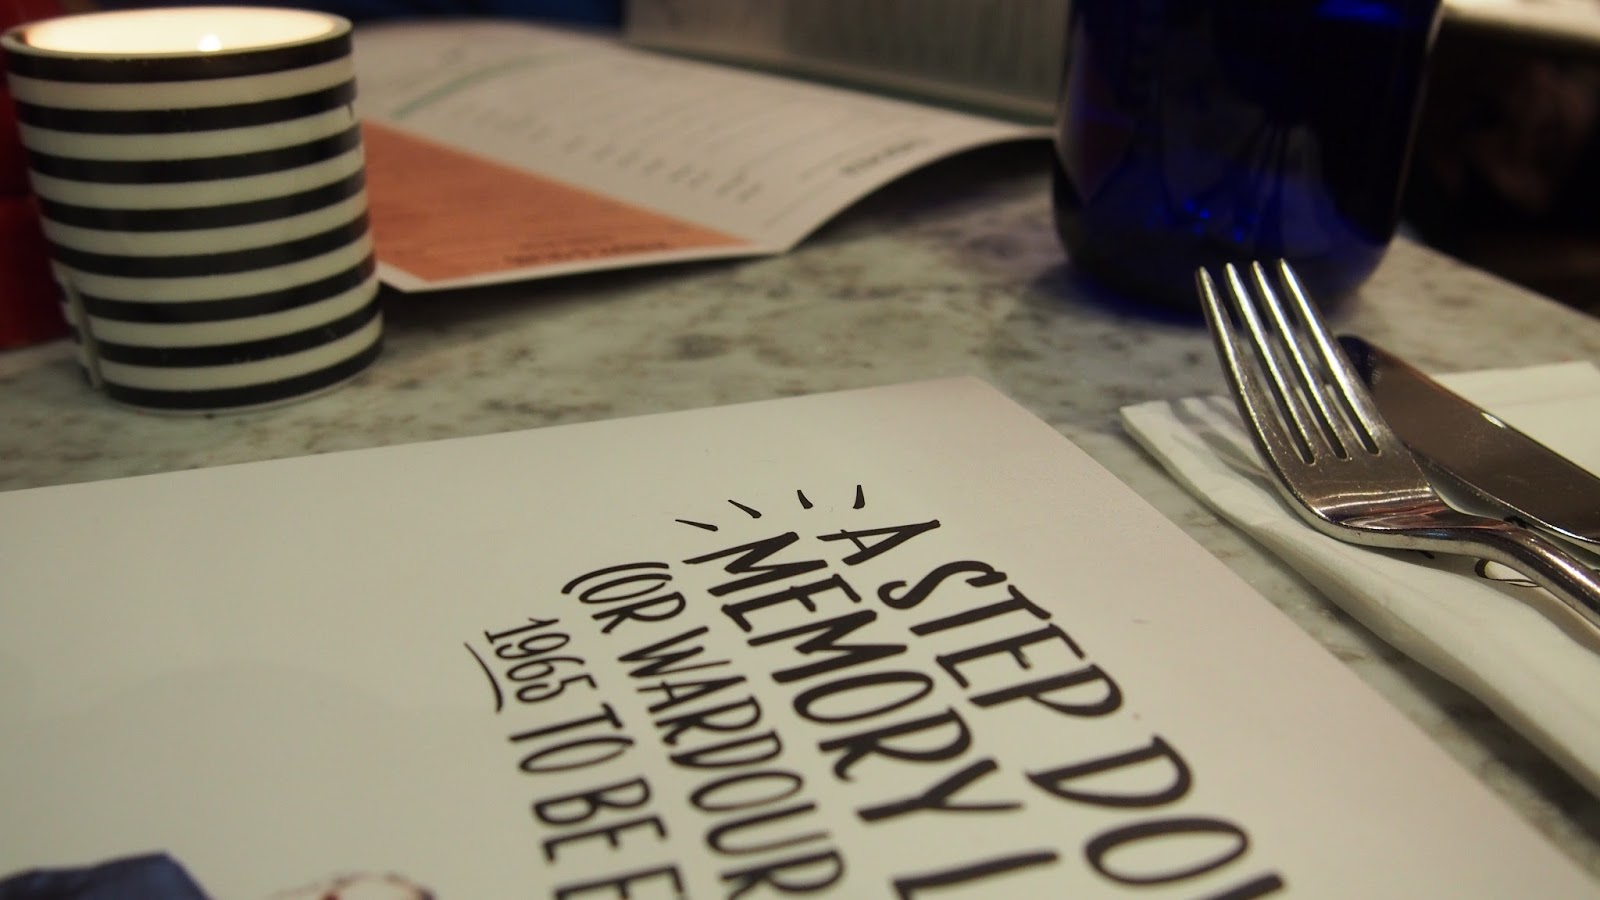 Lifestyle Pizza Express Telford Review Kirsty Leanne